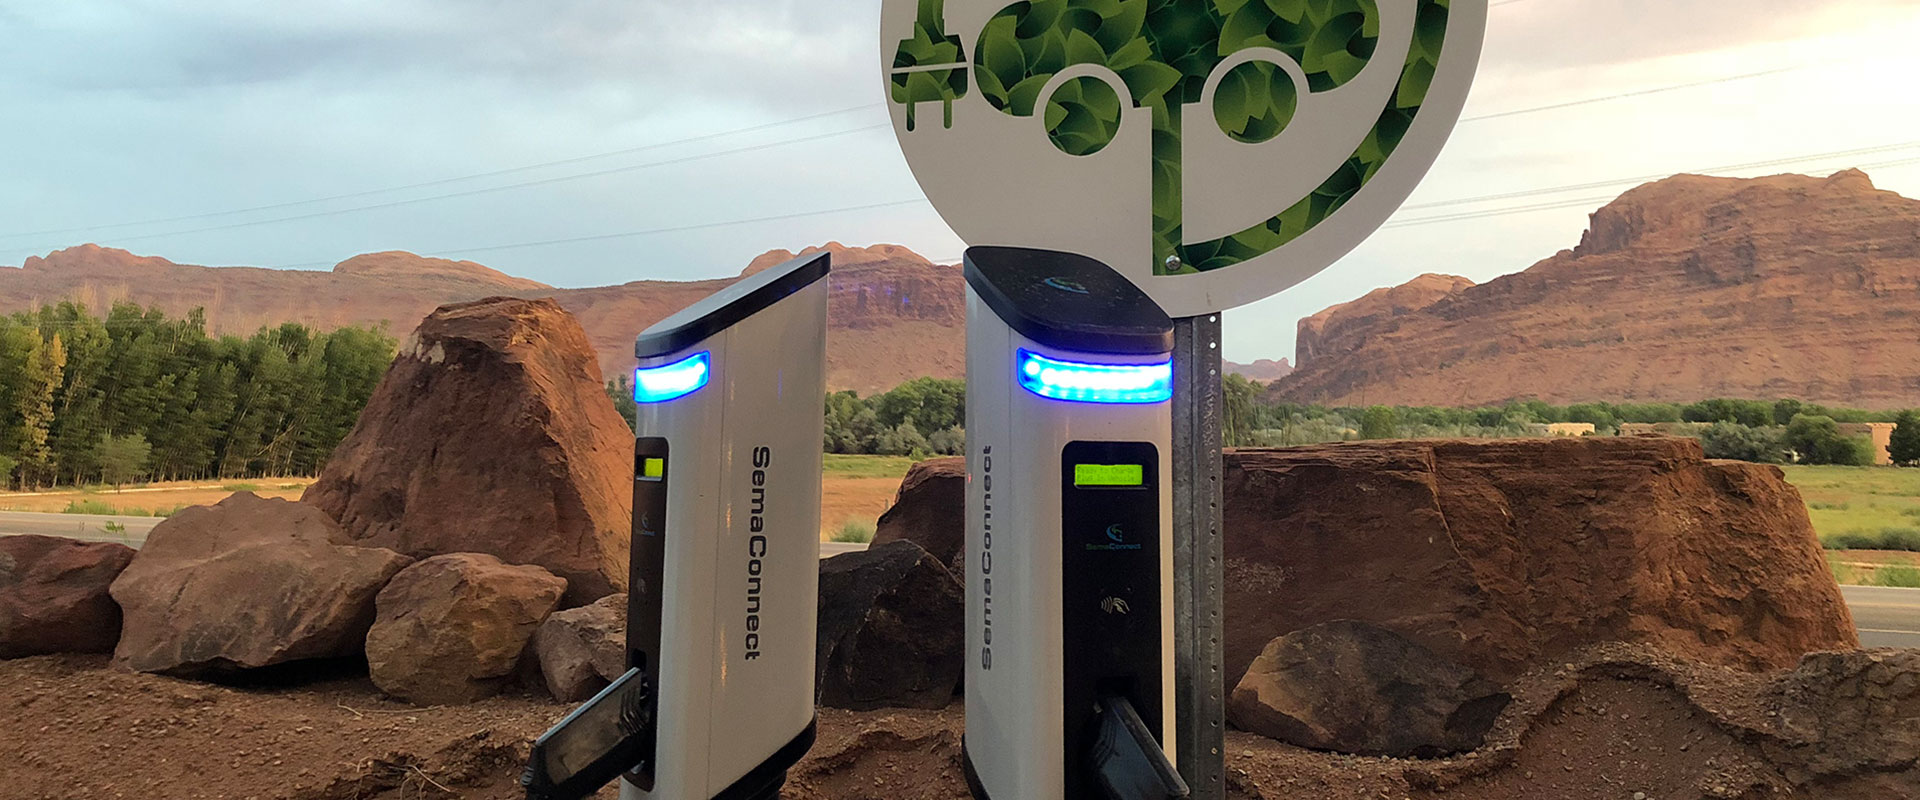 Two freshwater streams run across the vibrant green parkspace with tall trees providing ample shade on the Moab Springs Ranch property.